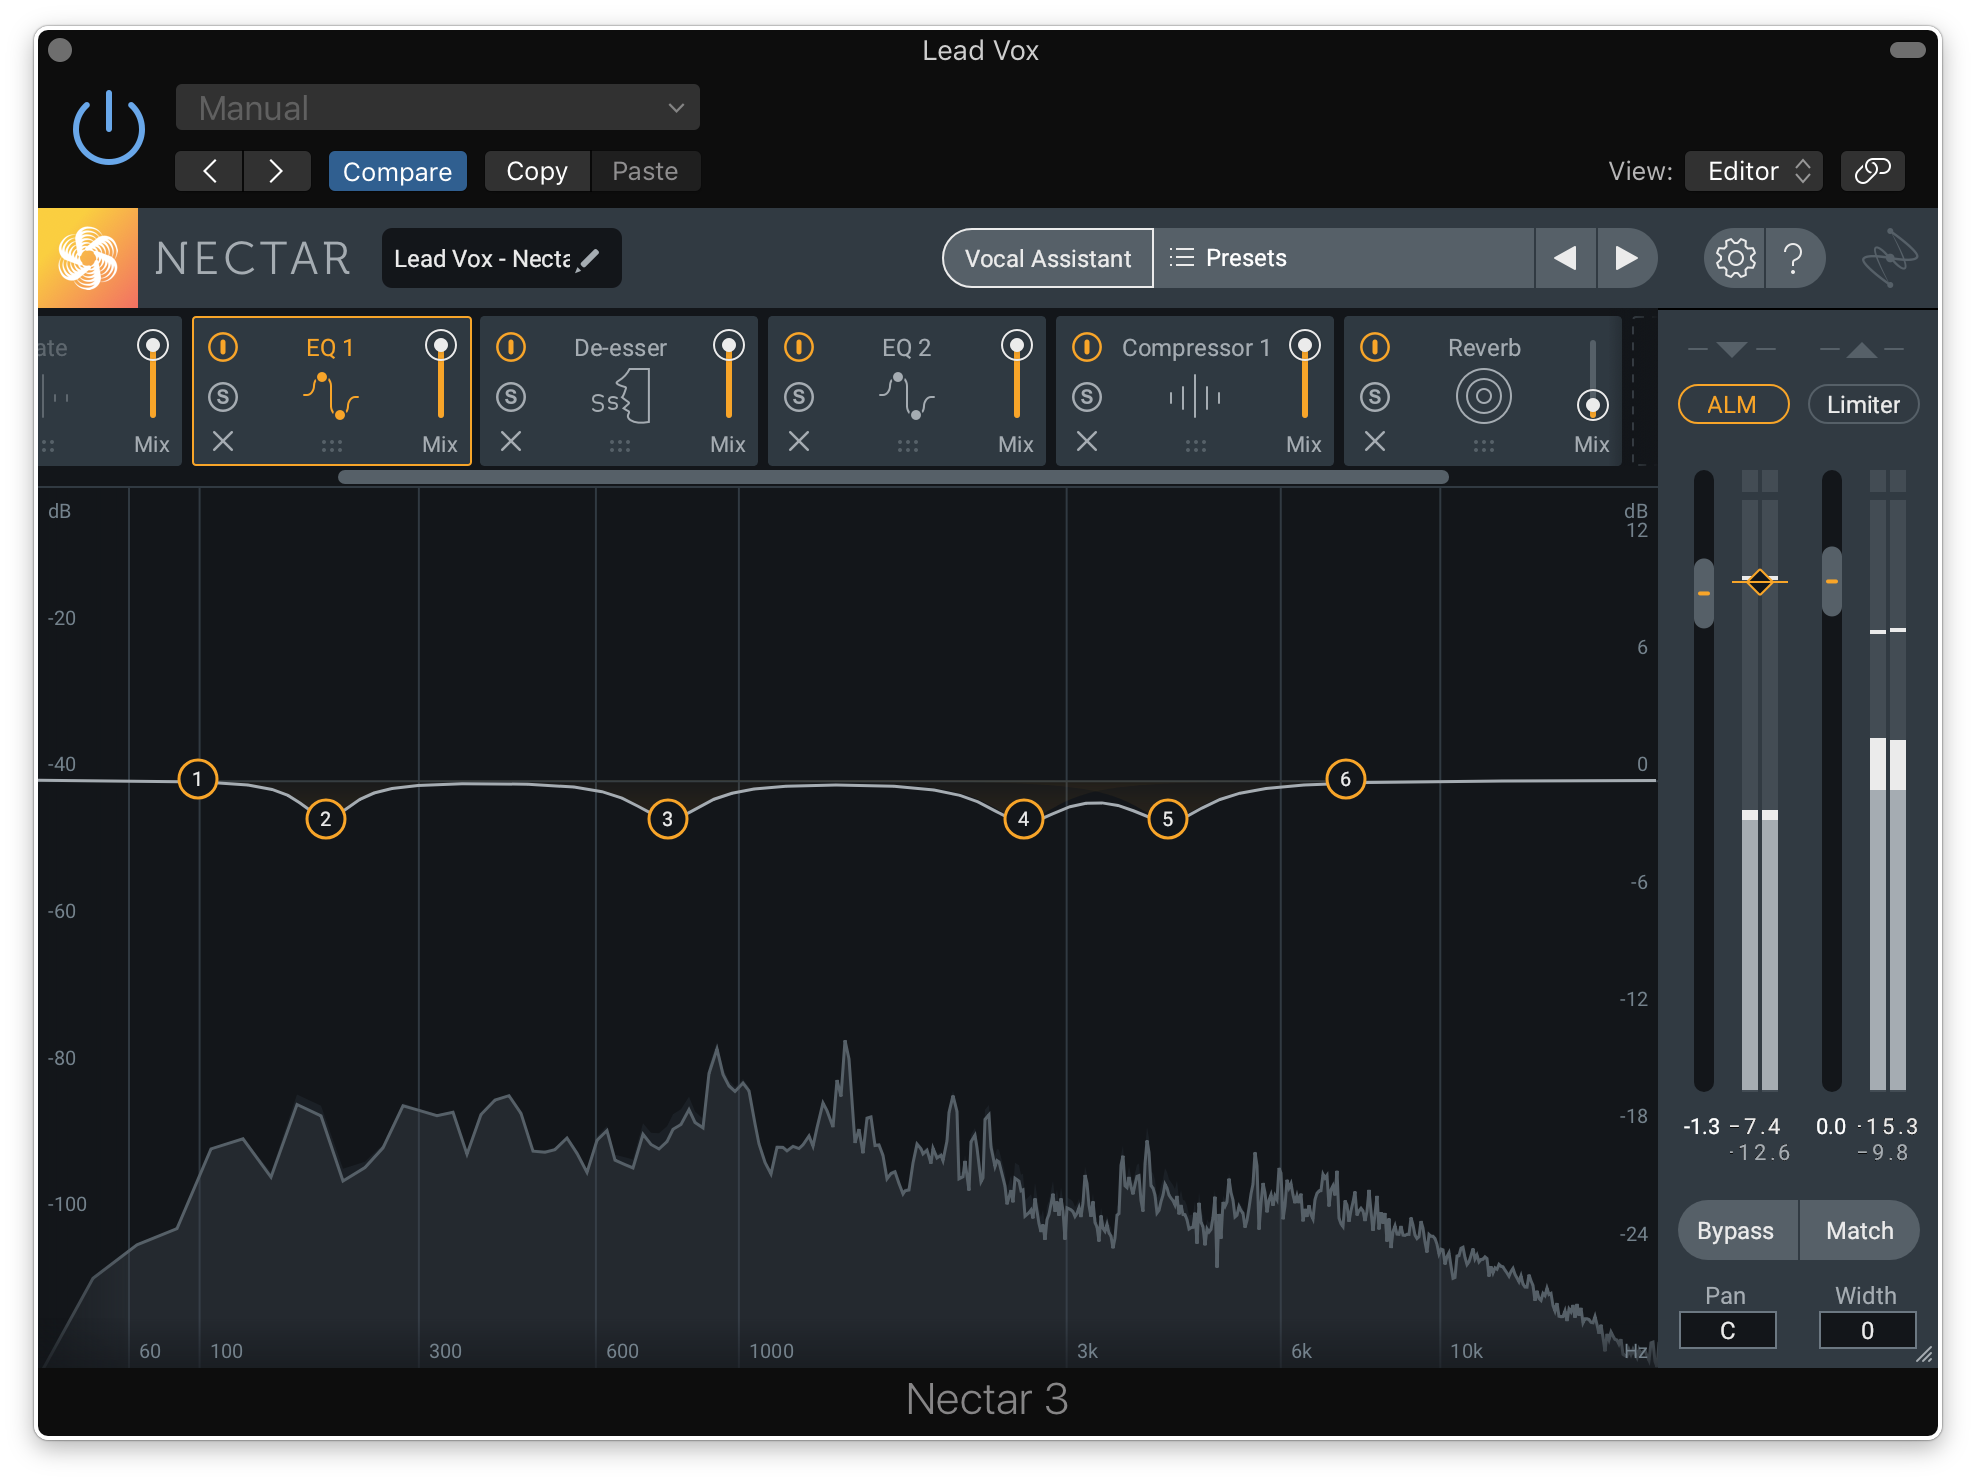 Nectar-3-Vocal-Assistant-setting